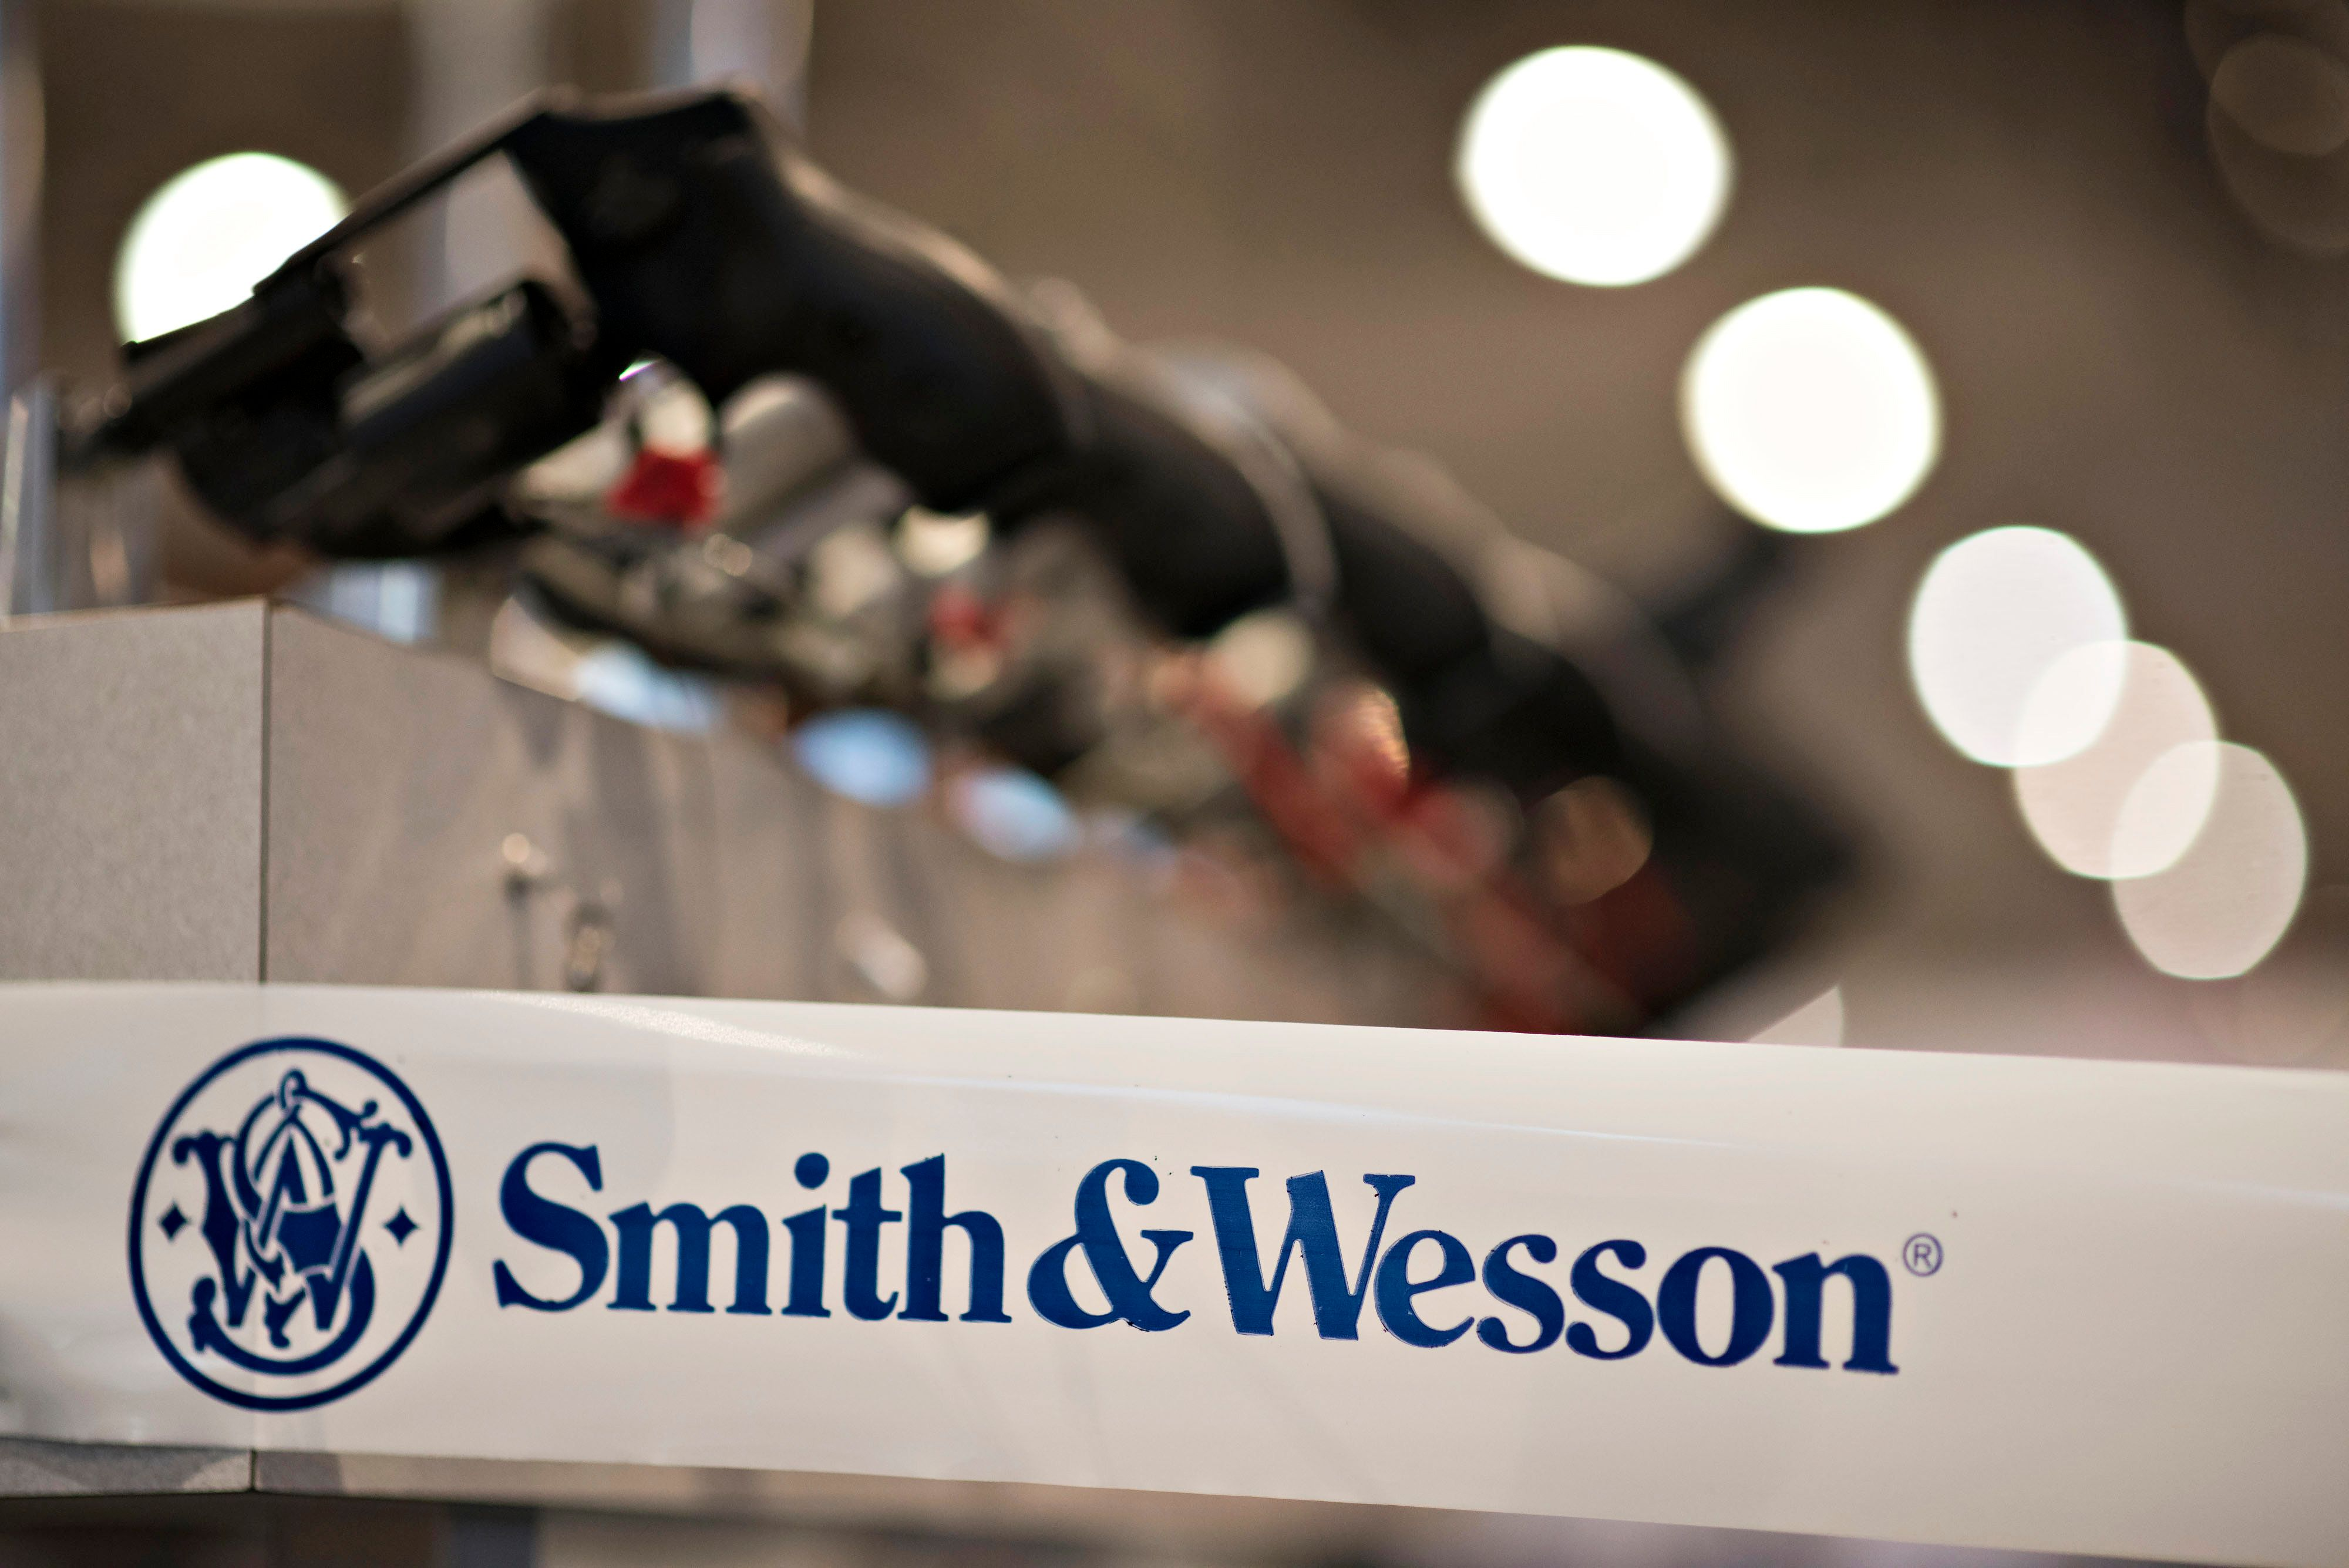 A Smith & Wesson Holding Corp. logo appears on tape surrounding the company's booth on the exhibition floor ahead of the 144th National Rifle Association (NRA) Annual Meetings and Exhibits at the Music City Center in Nashville, Tennessee, U.S., on Thursday, April 9, 2015. Top Republican contenders for their party's 2016 presidential nomination are lining up to speak at the annual NRA event, except New Jersey Governor Chris Christie and Kentucky Senator Rand Paul who were snubbed by the country's largest and most powerful gun lobby. Photographer: Daniel Acker/Bloomberg via Getty Images